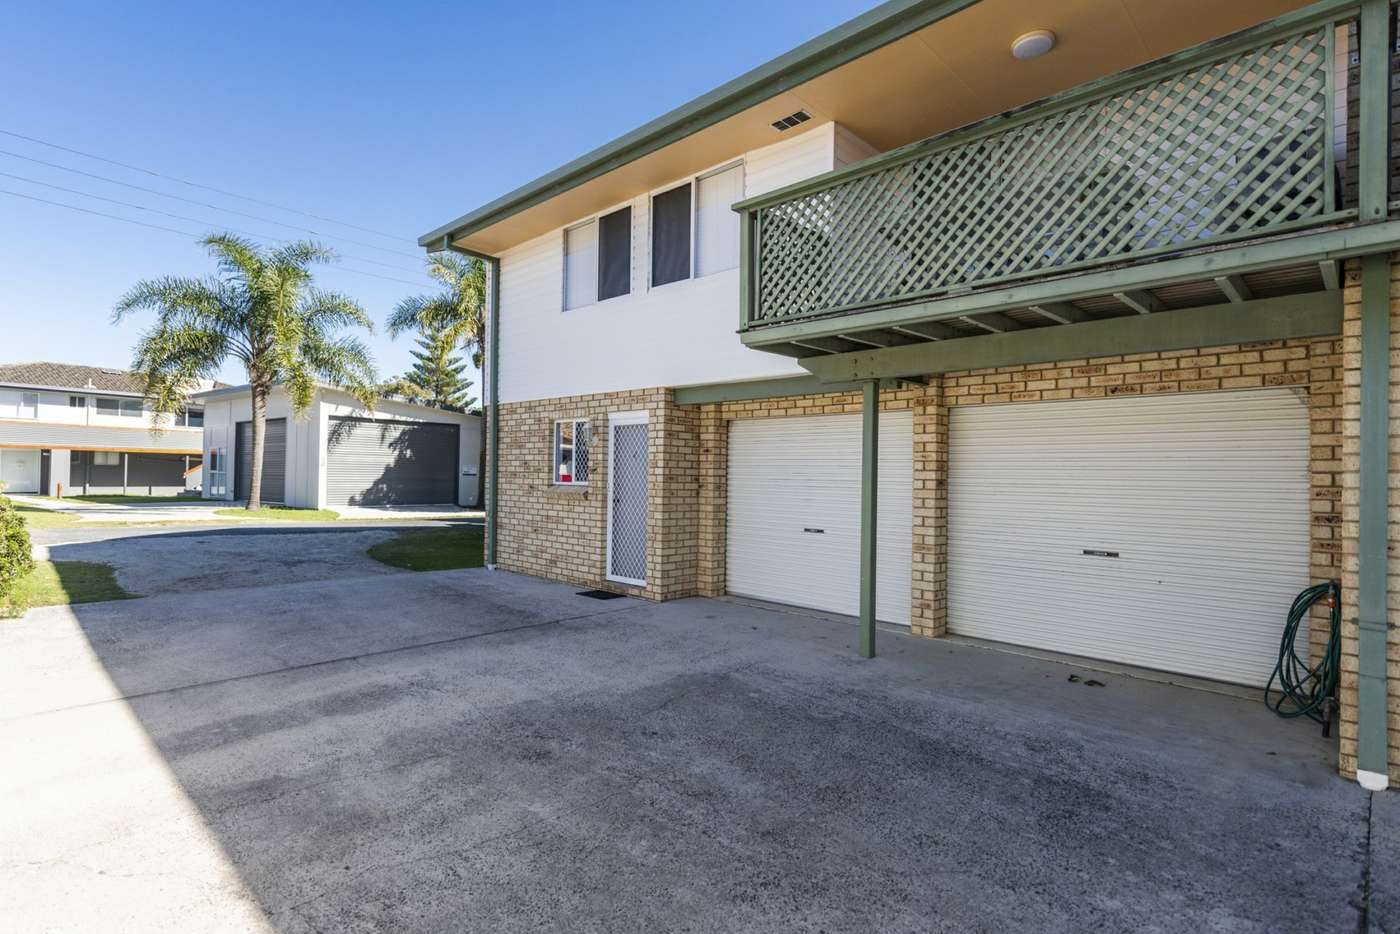 Seventh view of Homely unit listing, 4/56 Charles St, Iluka NSW 2466